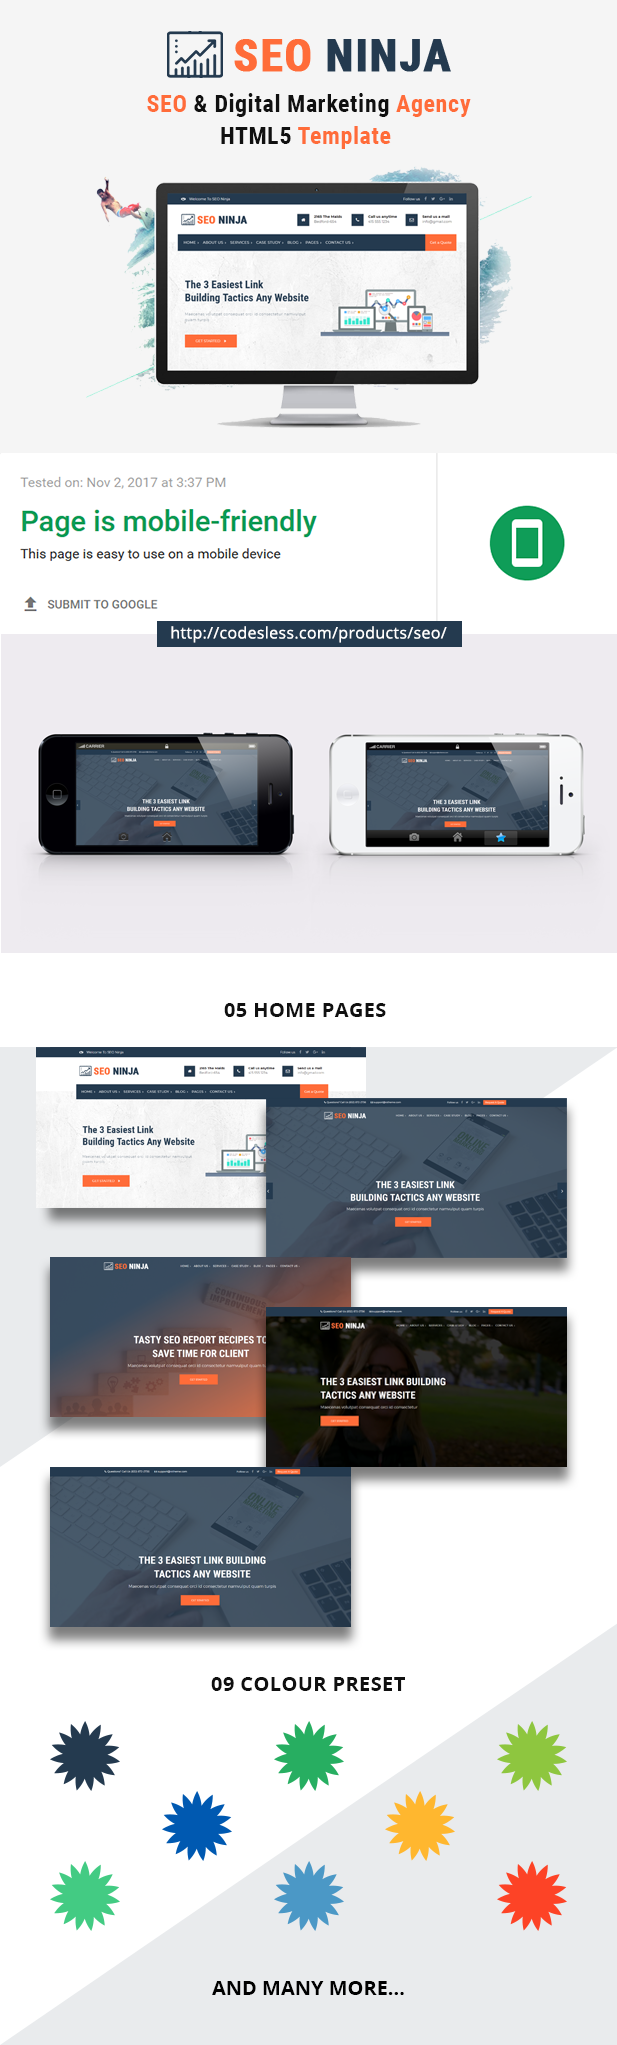 SEO Ninja - SEO and Digital Marketing Agency Responsive HTML Template